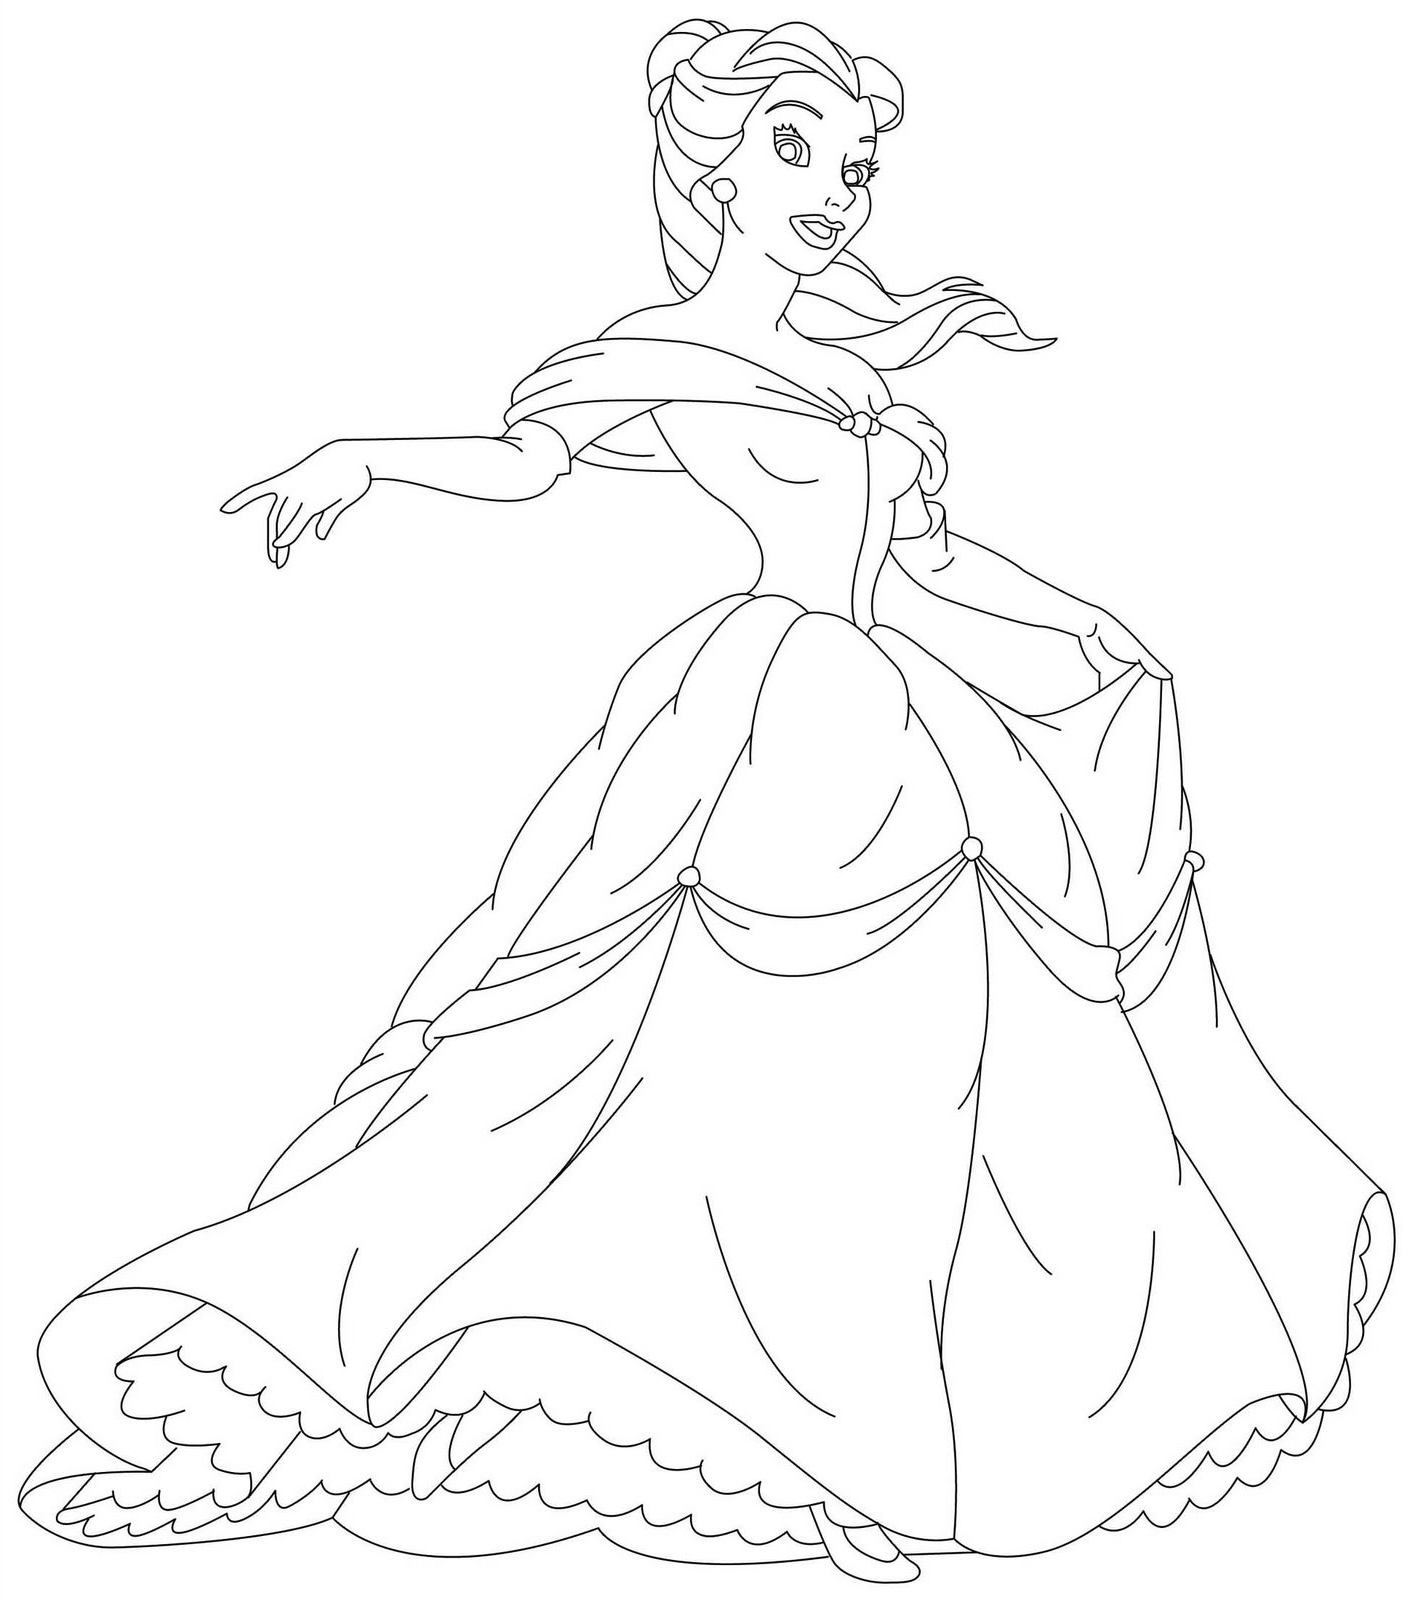 Disney Princesses Printable Coloring Pages Coloring Pages Of Disney Princess Printable